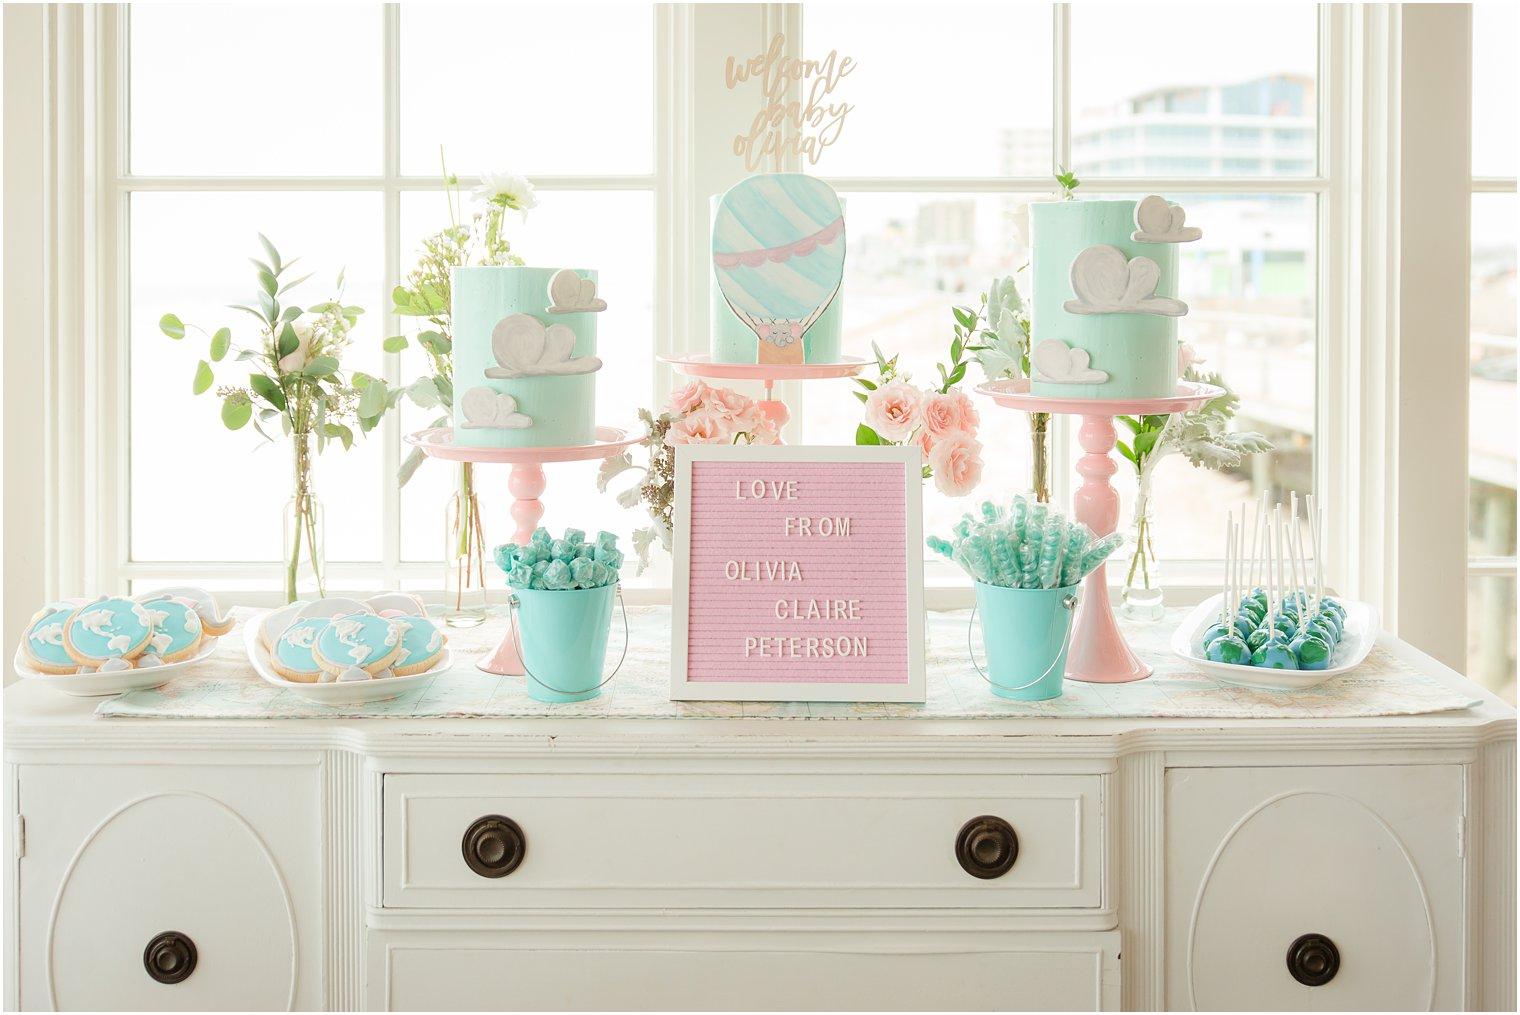 Baby Shower Themes for Girls - Hot Air Balloon Baby Shower